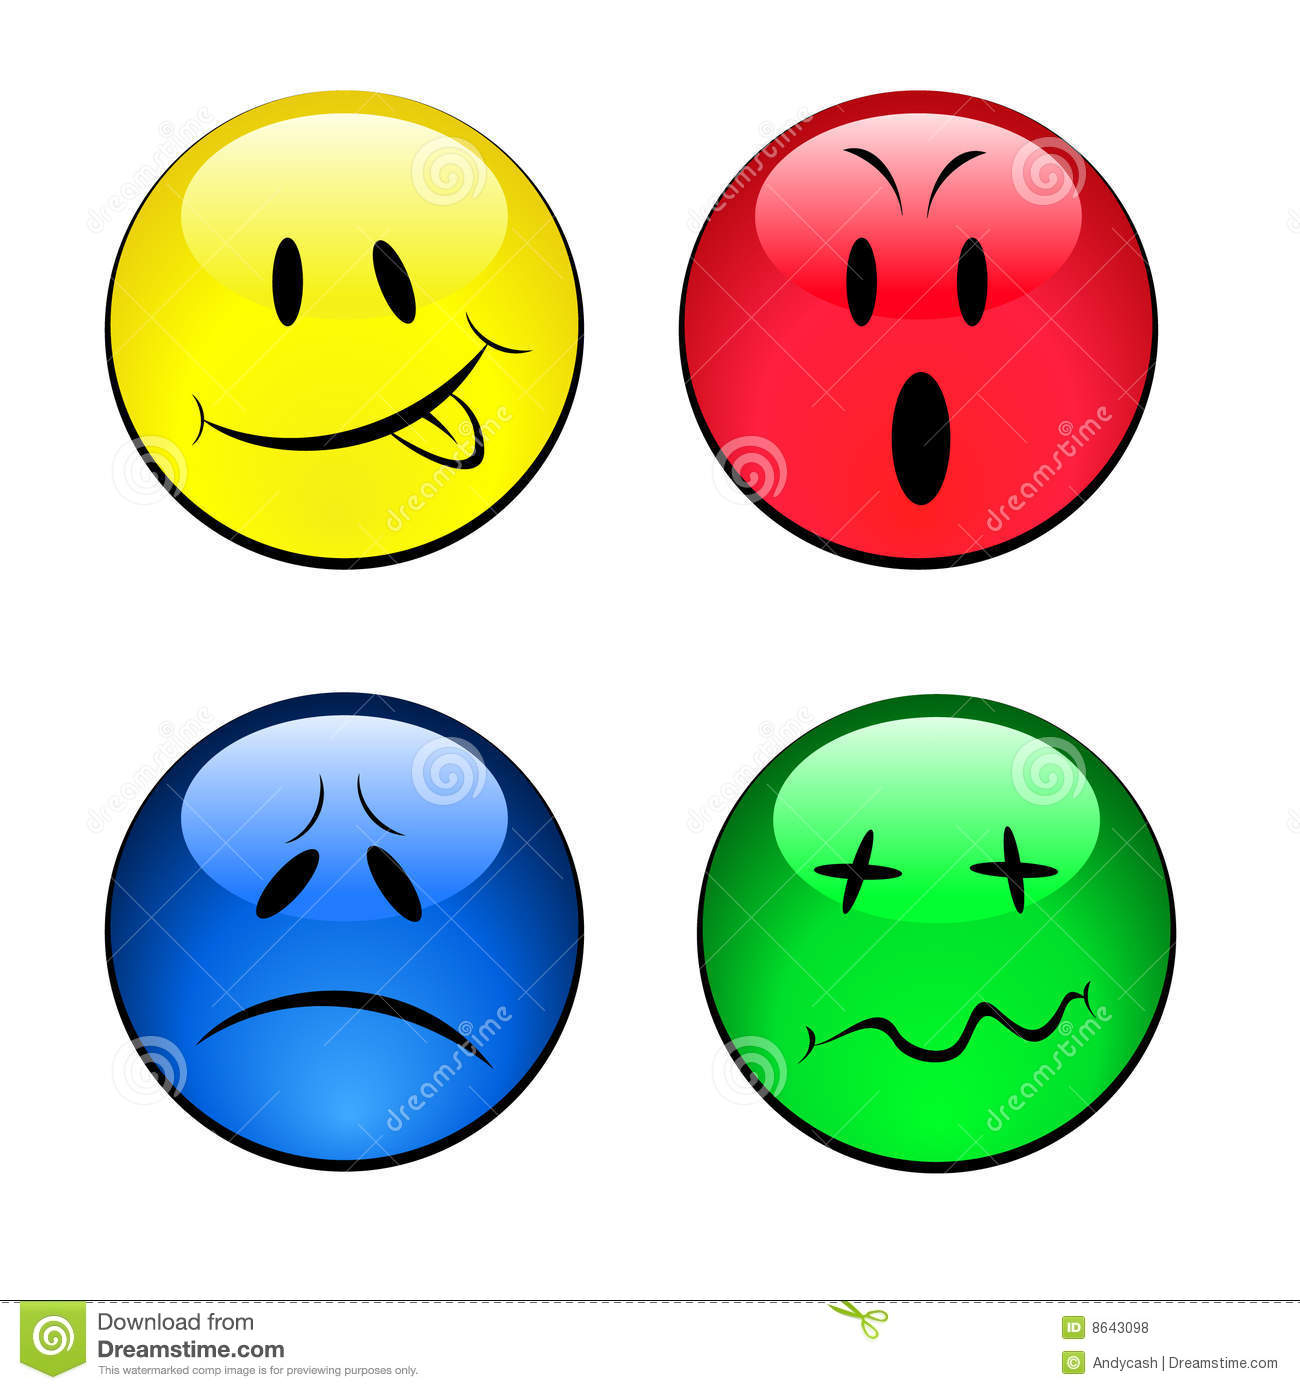 Reeks Smiley Emotionele Gezichten Vector Illustratie